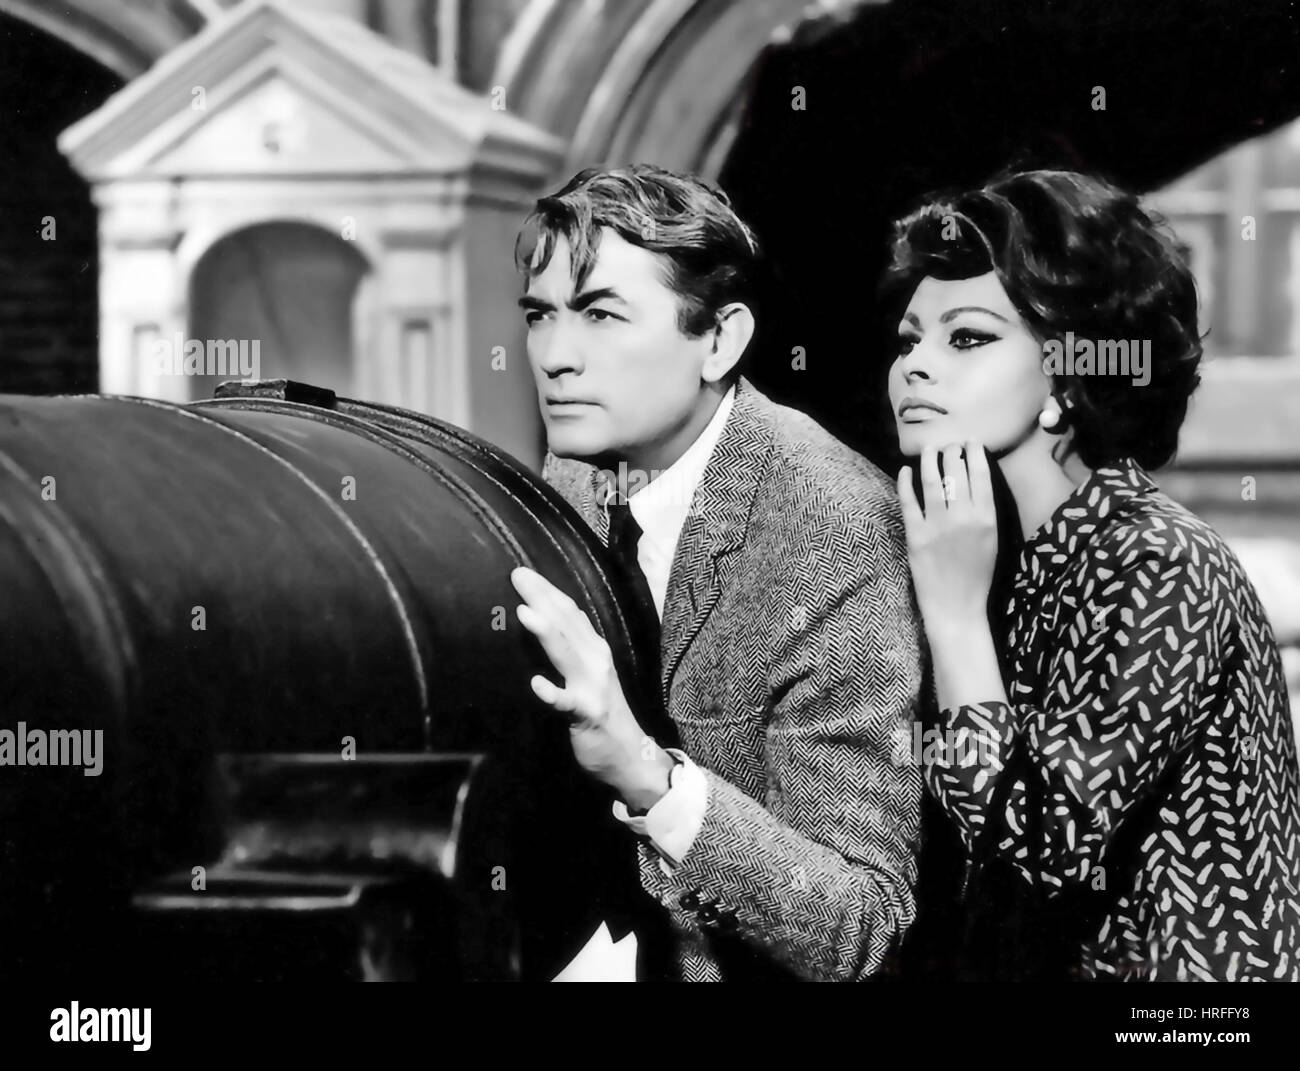 ARABESQUE 1966 Universal Pictures film with Gregory Peck and Sophia Loren - Stock Image